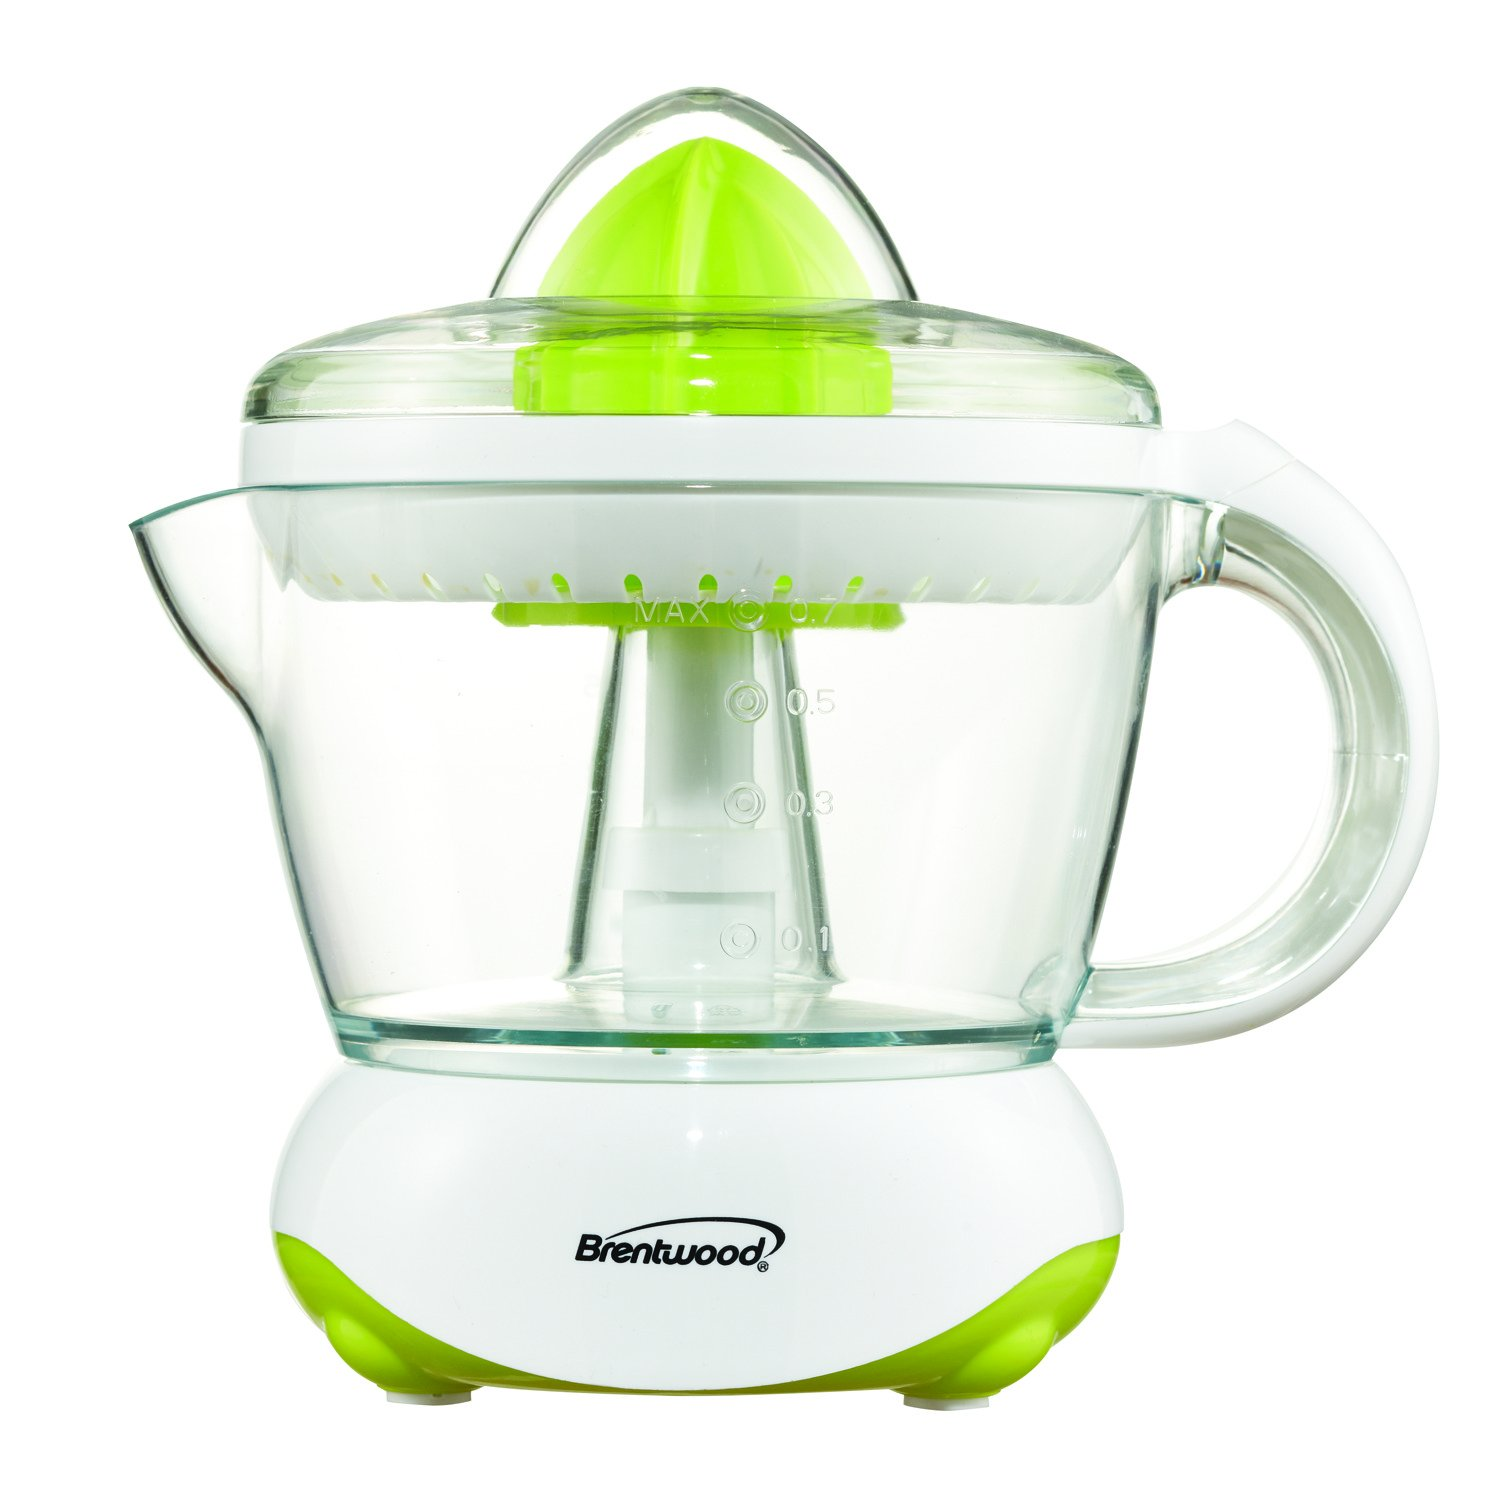 Brentwood  J-15  24oz  Electric  Citrus  Juicer,  White by Brentwood (Image #2)